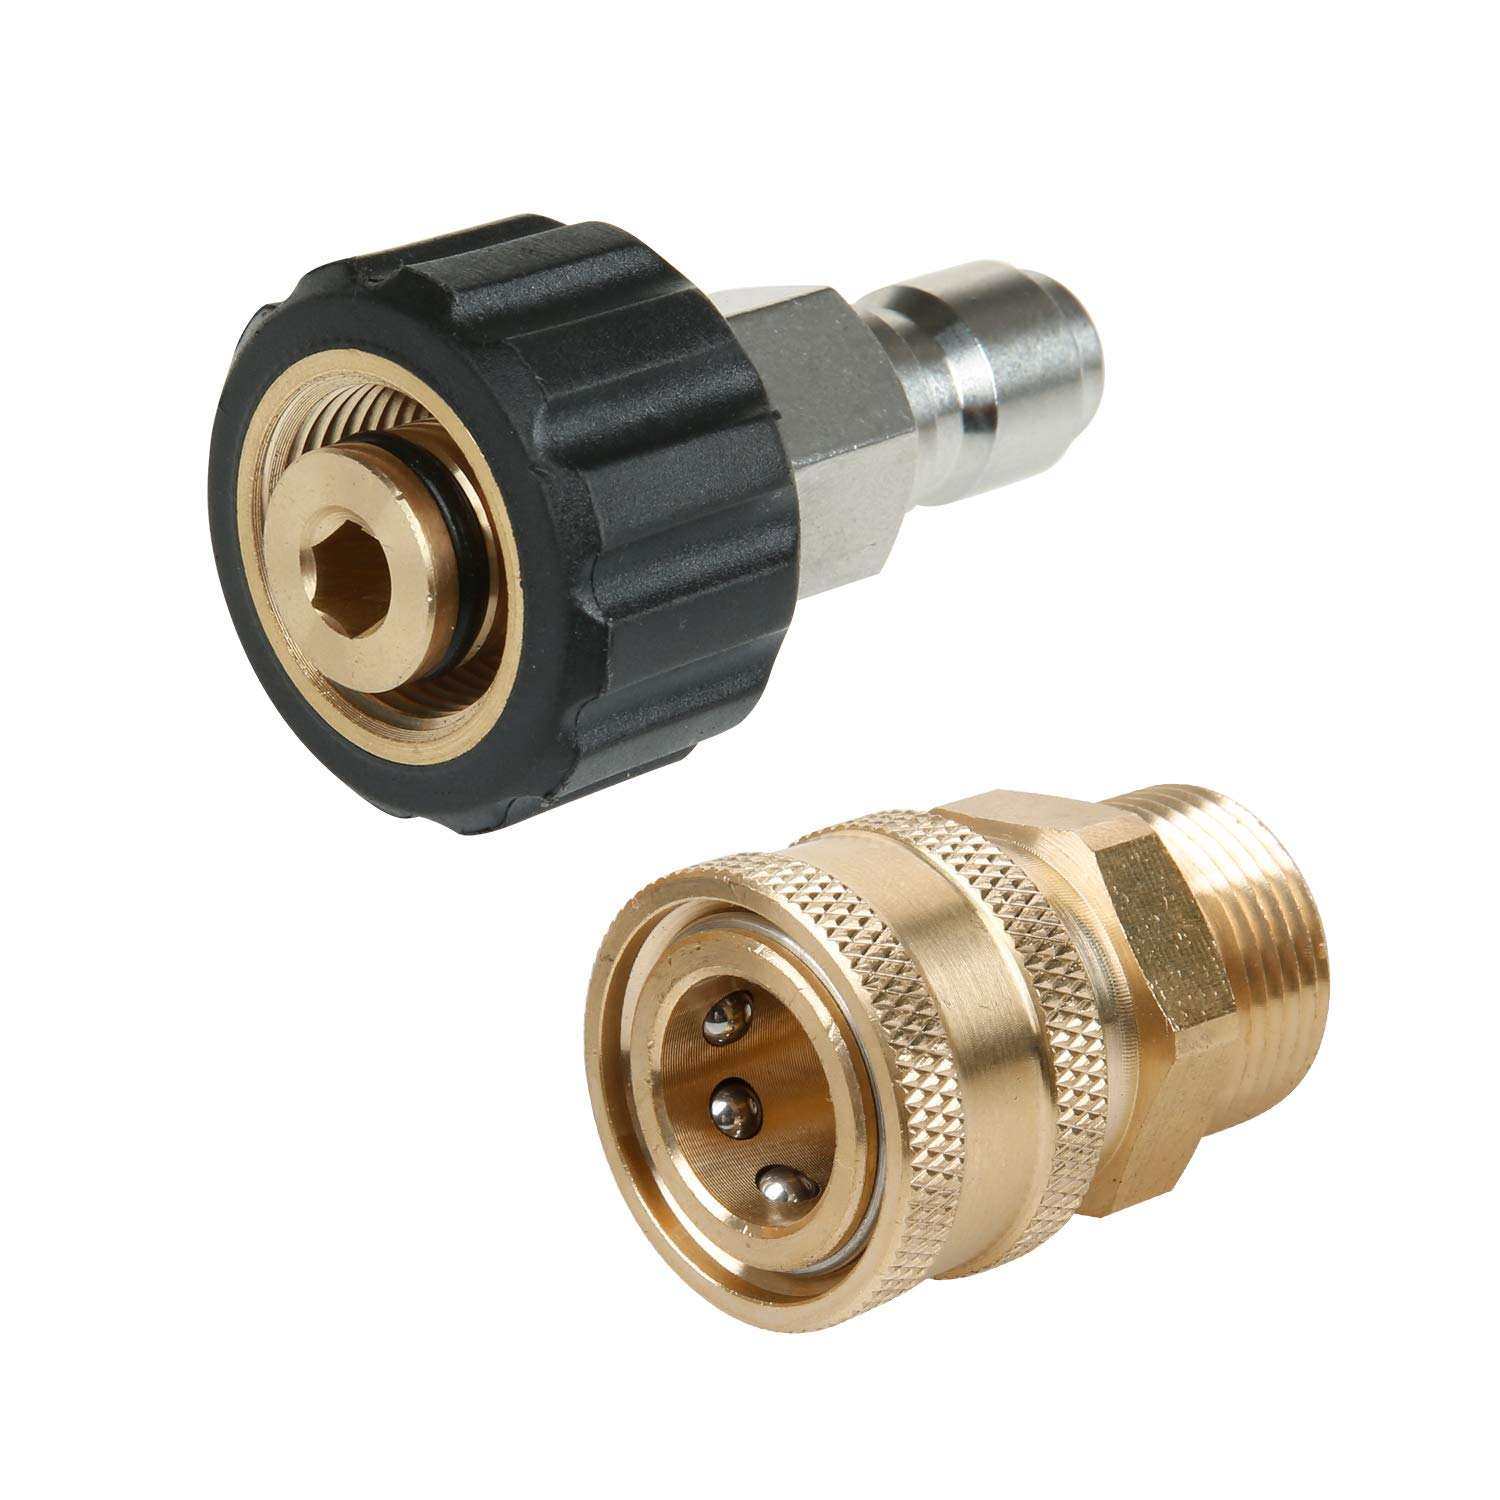 Sooprinse Pressure Washer Adapter Set,Quick Connect Kit,5000 PSI, M22 14mm Swivel to M22 Metric Fitting